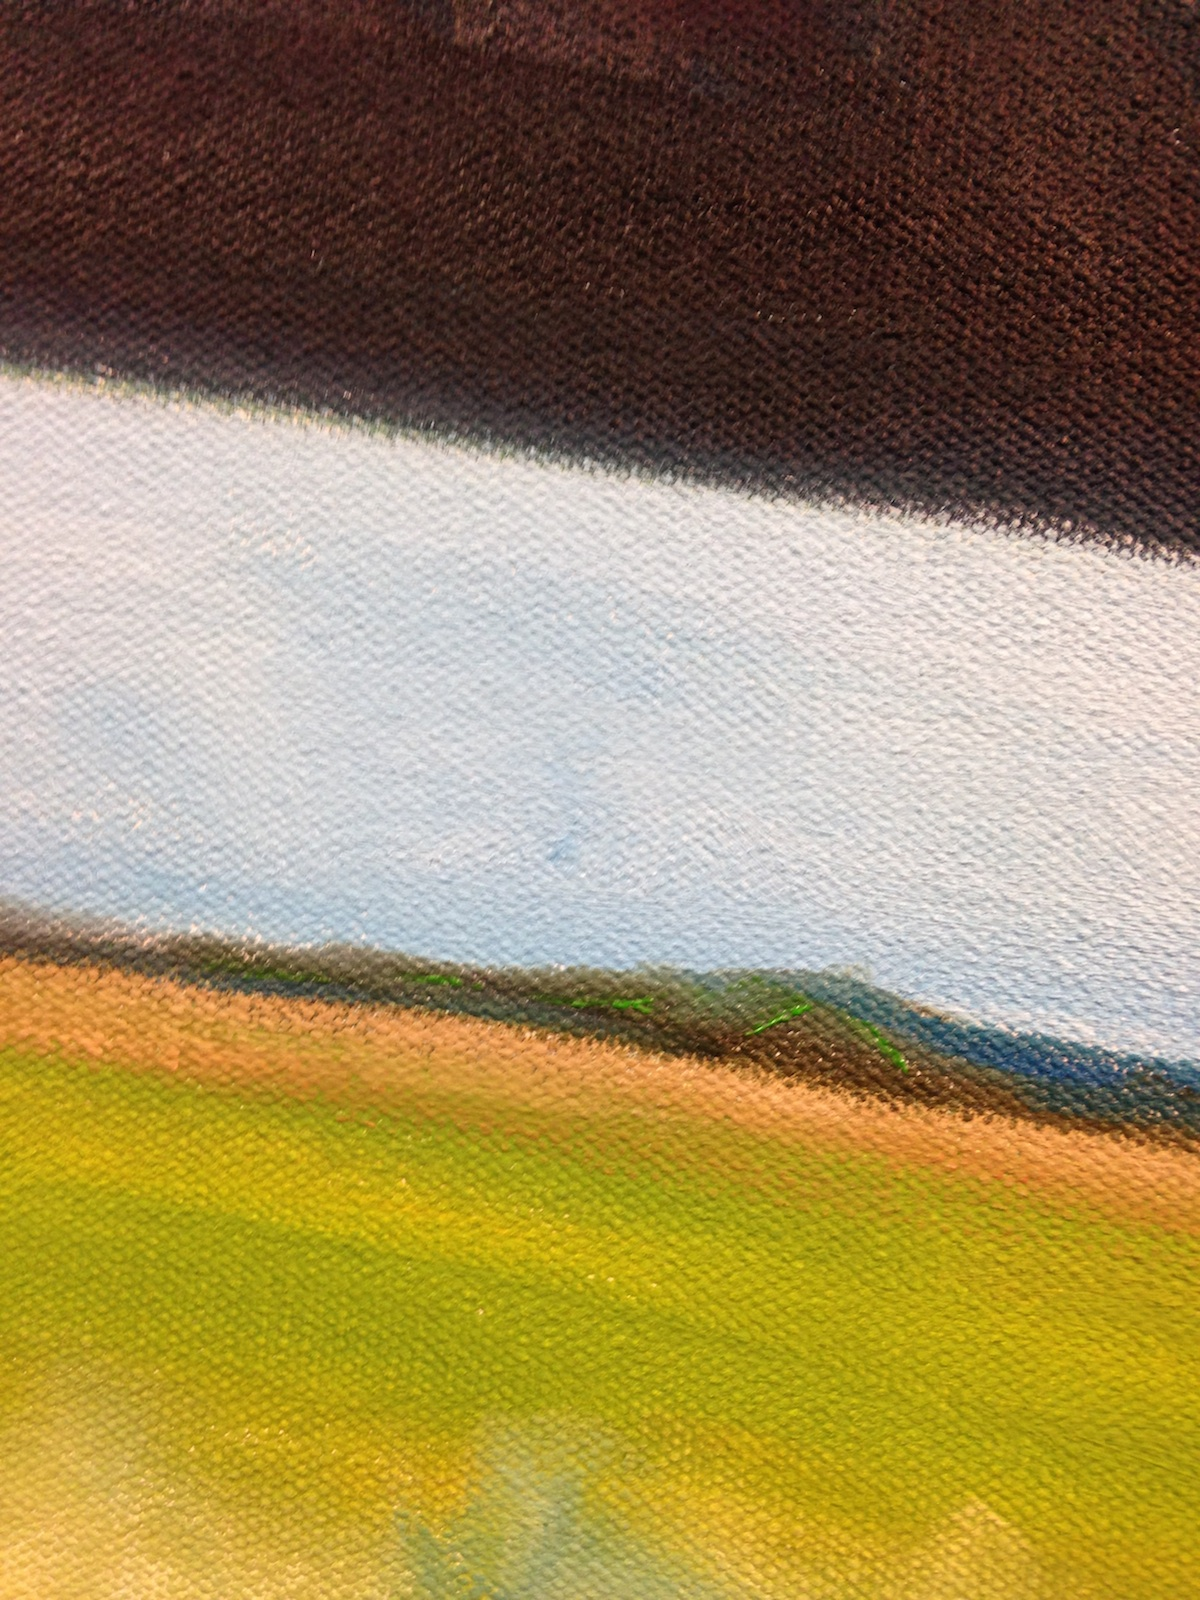 detail of an unfinished painting